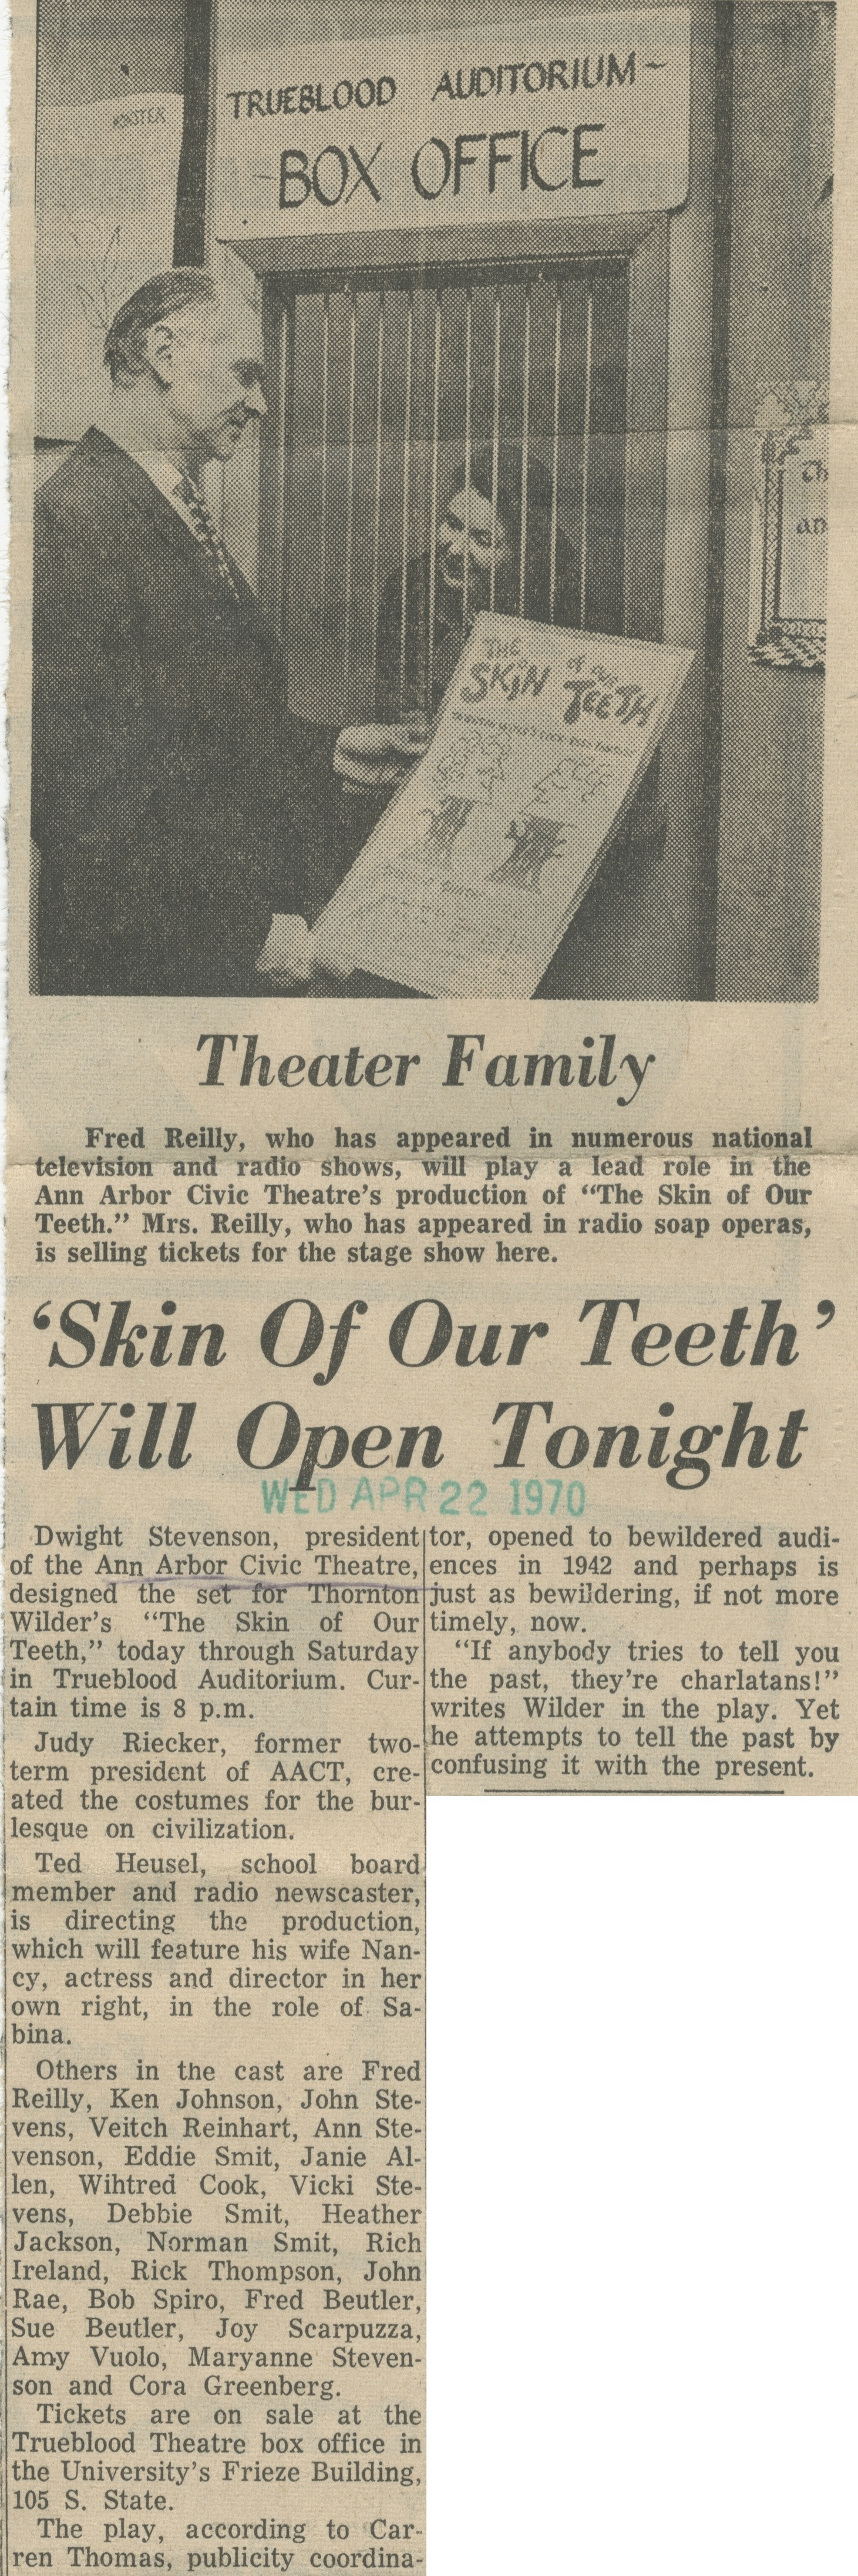 'Skin Of Our Teeth' Will Open Tonight image